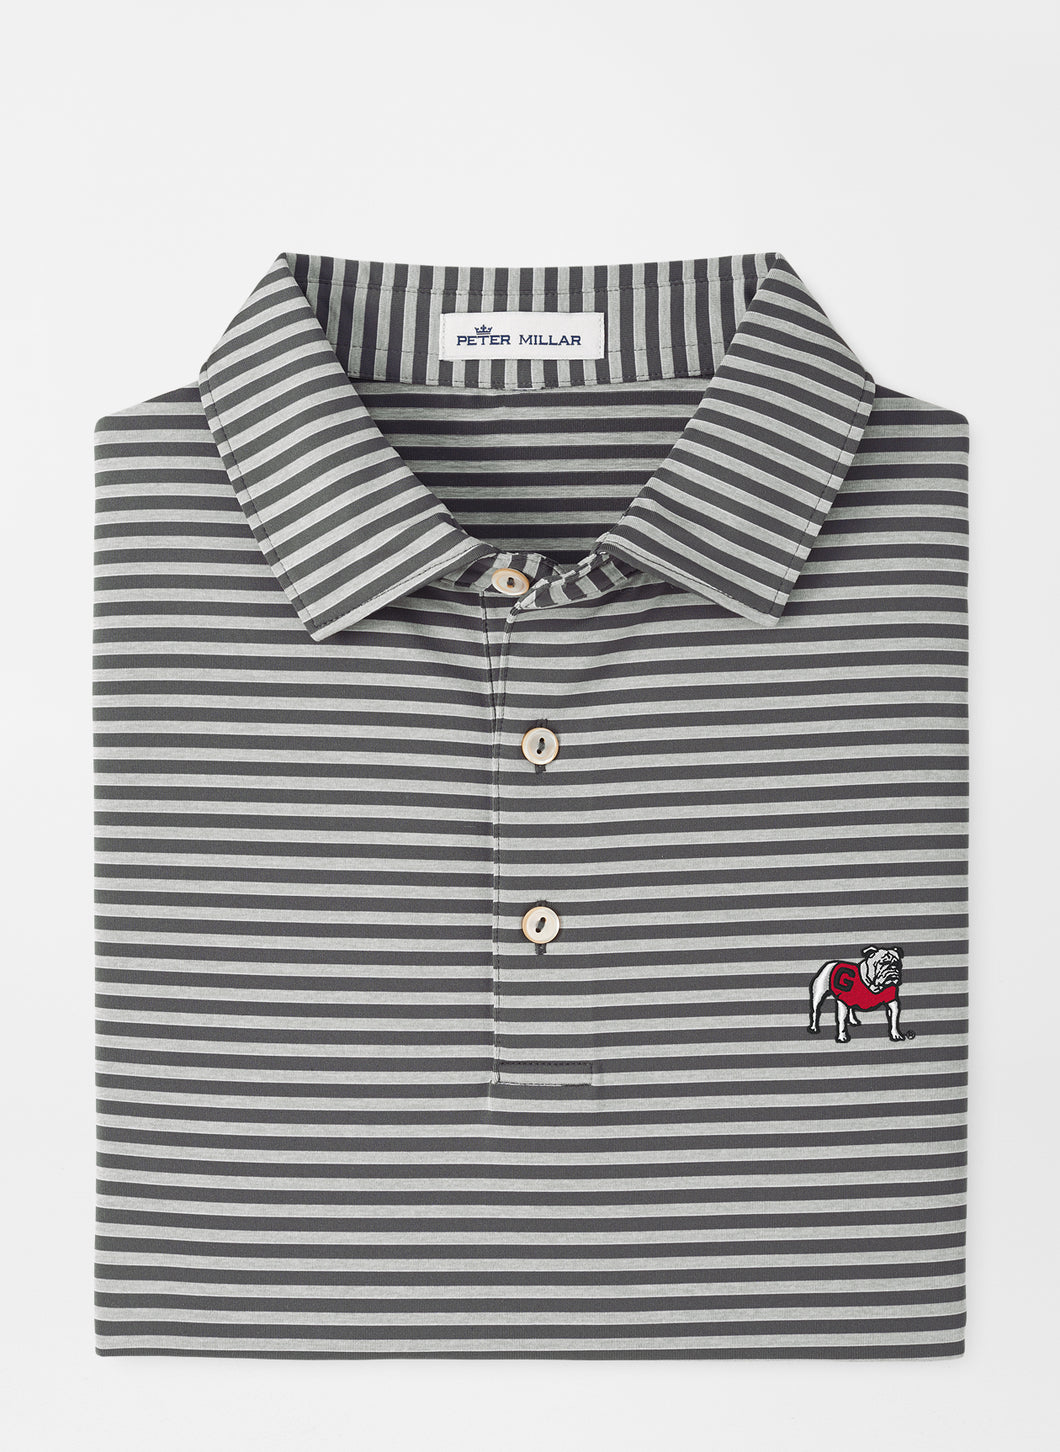 Peter Millar Georgia Standing Bulldog Mills Stripe Performance Polo in Iron